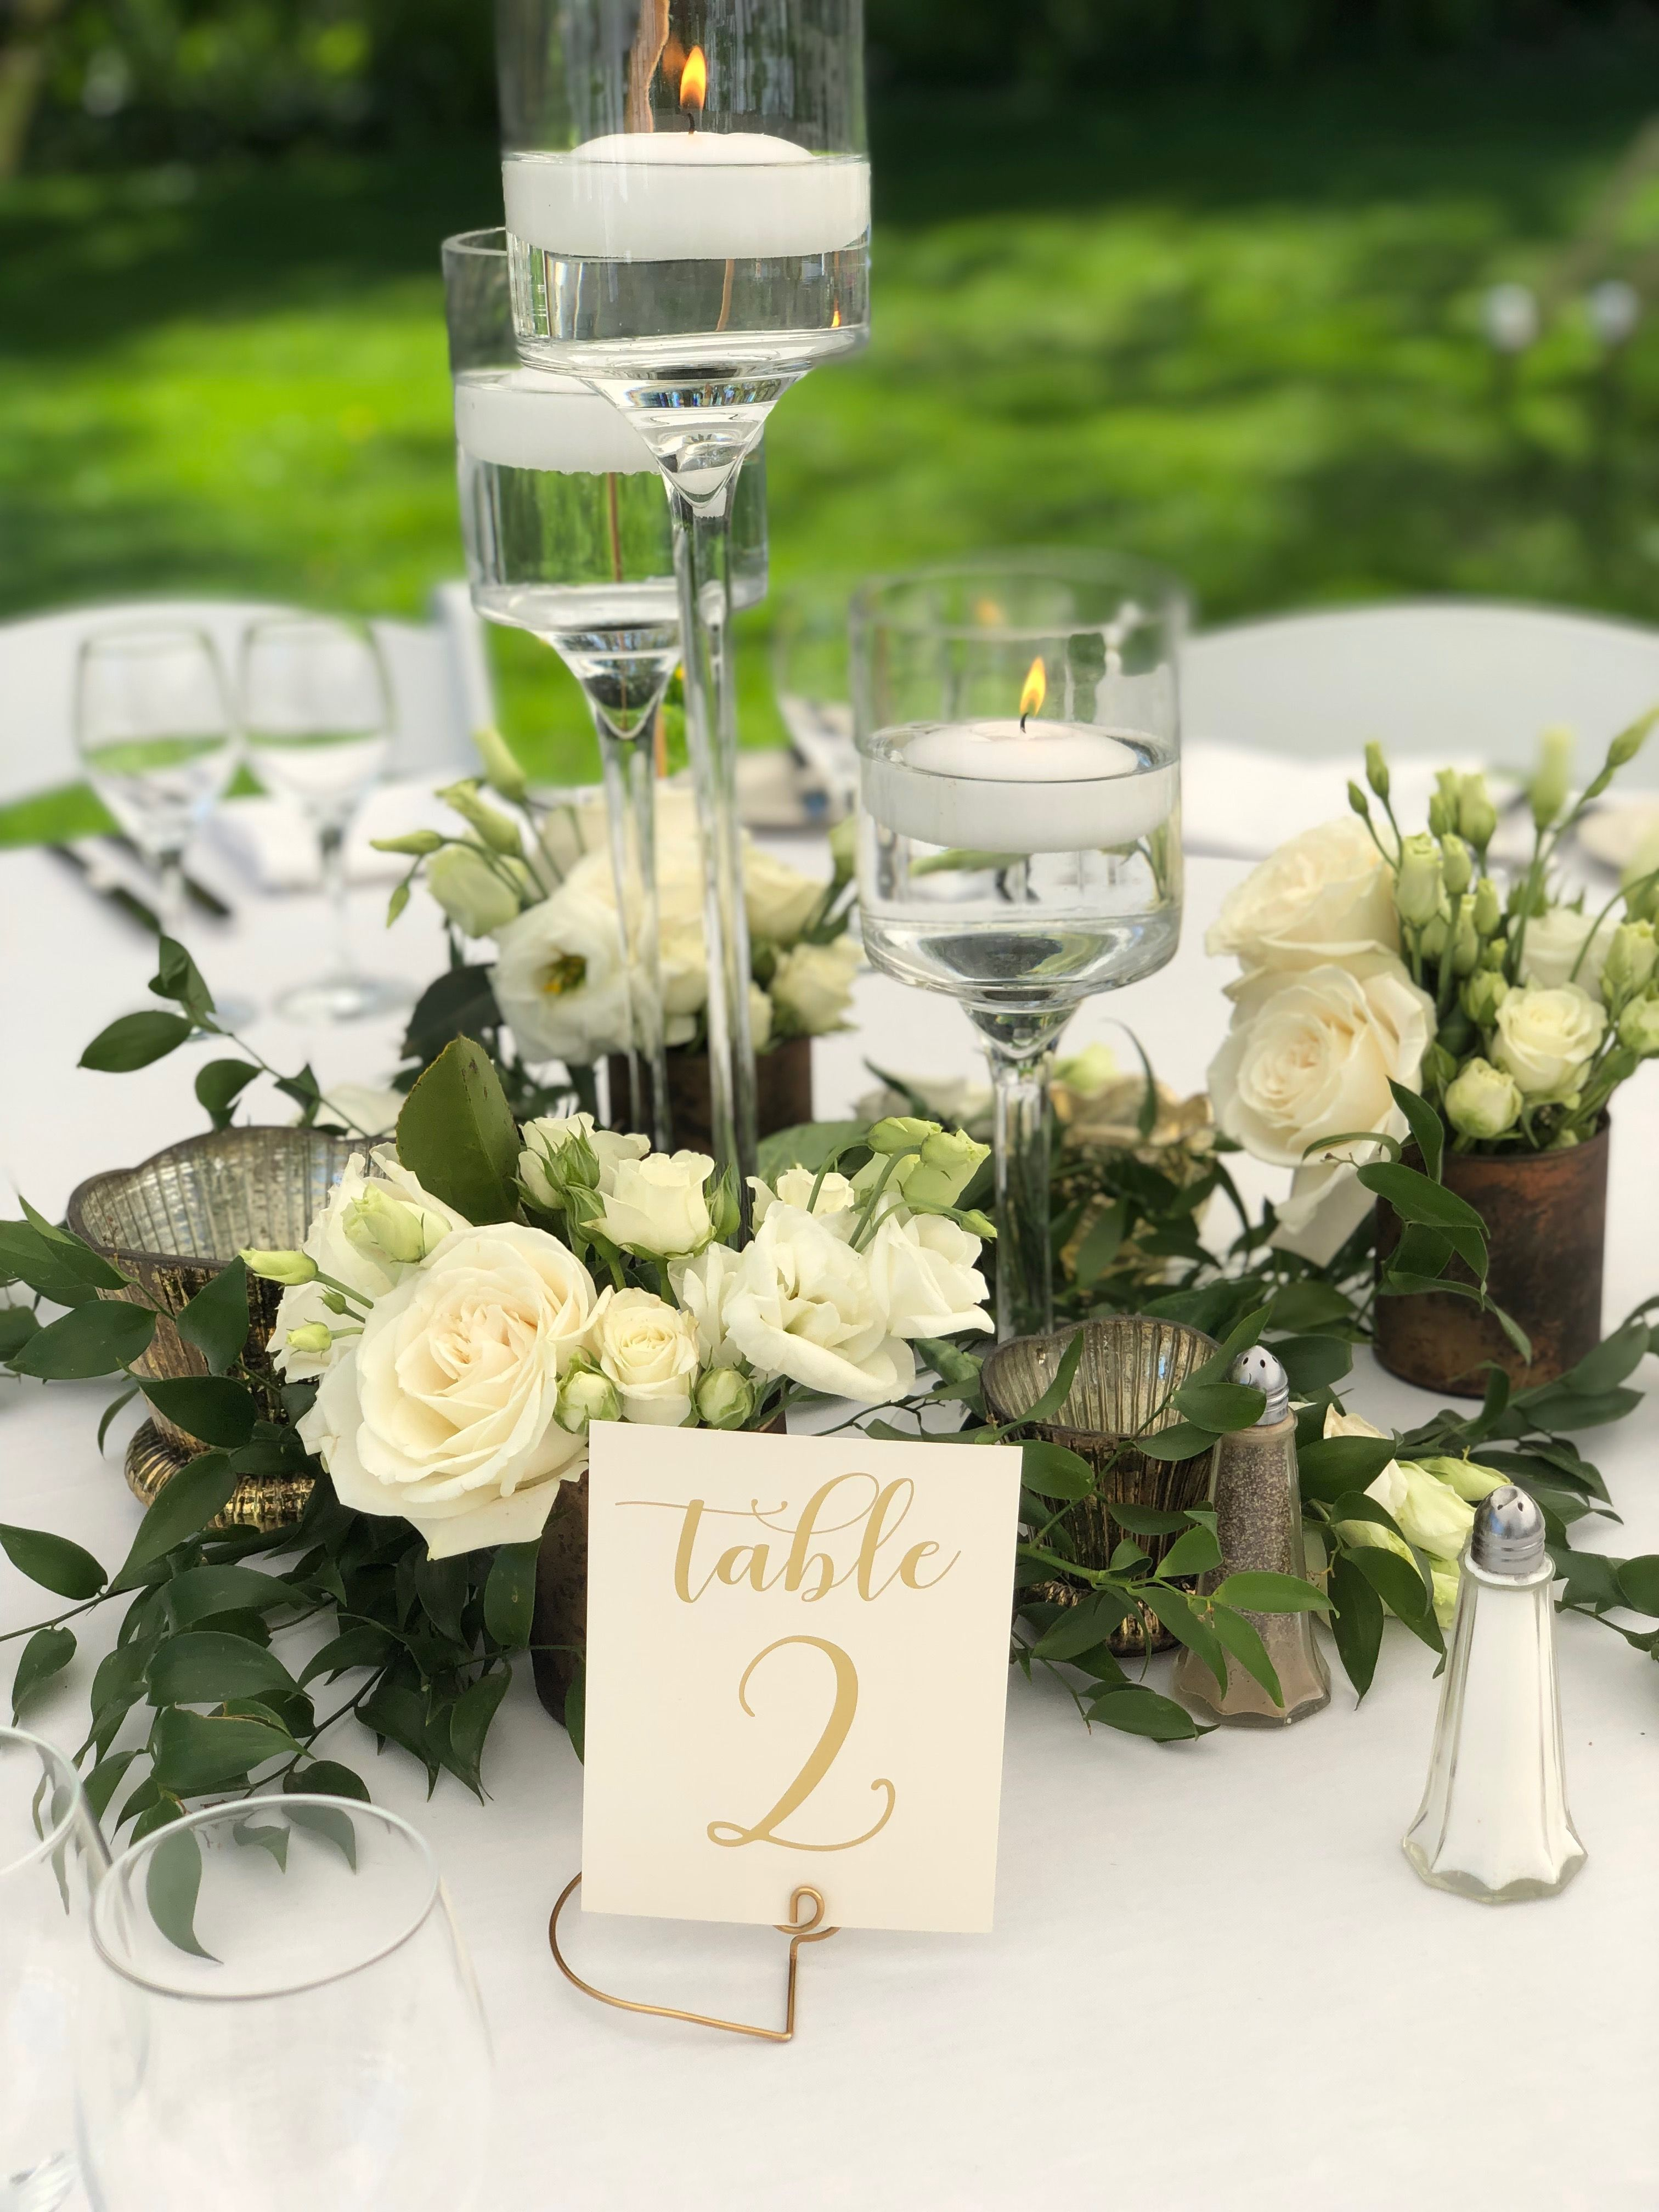 White And Green Flowers Wedding Floating Candle Centerpiec